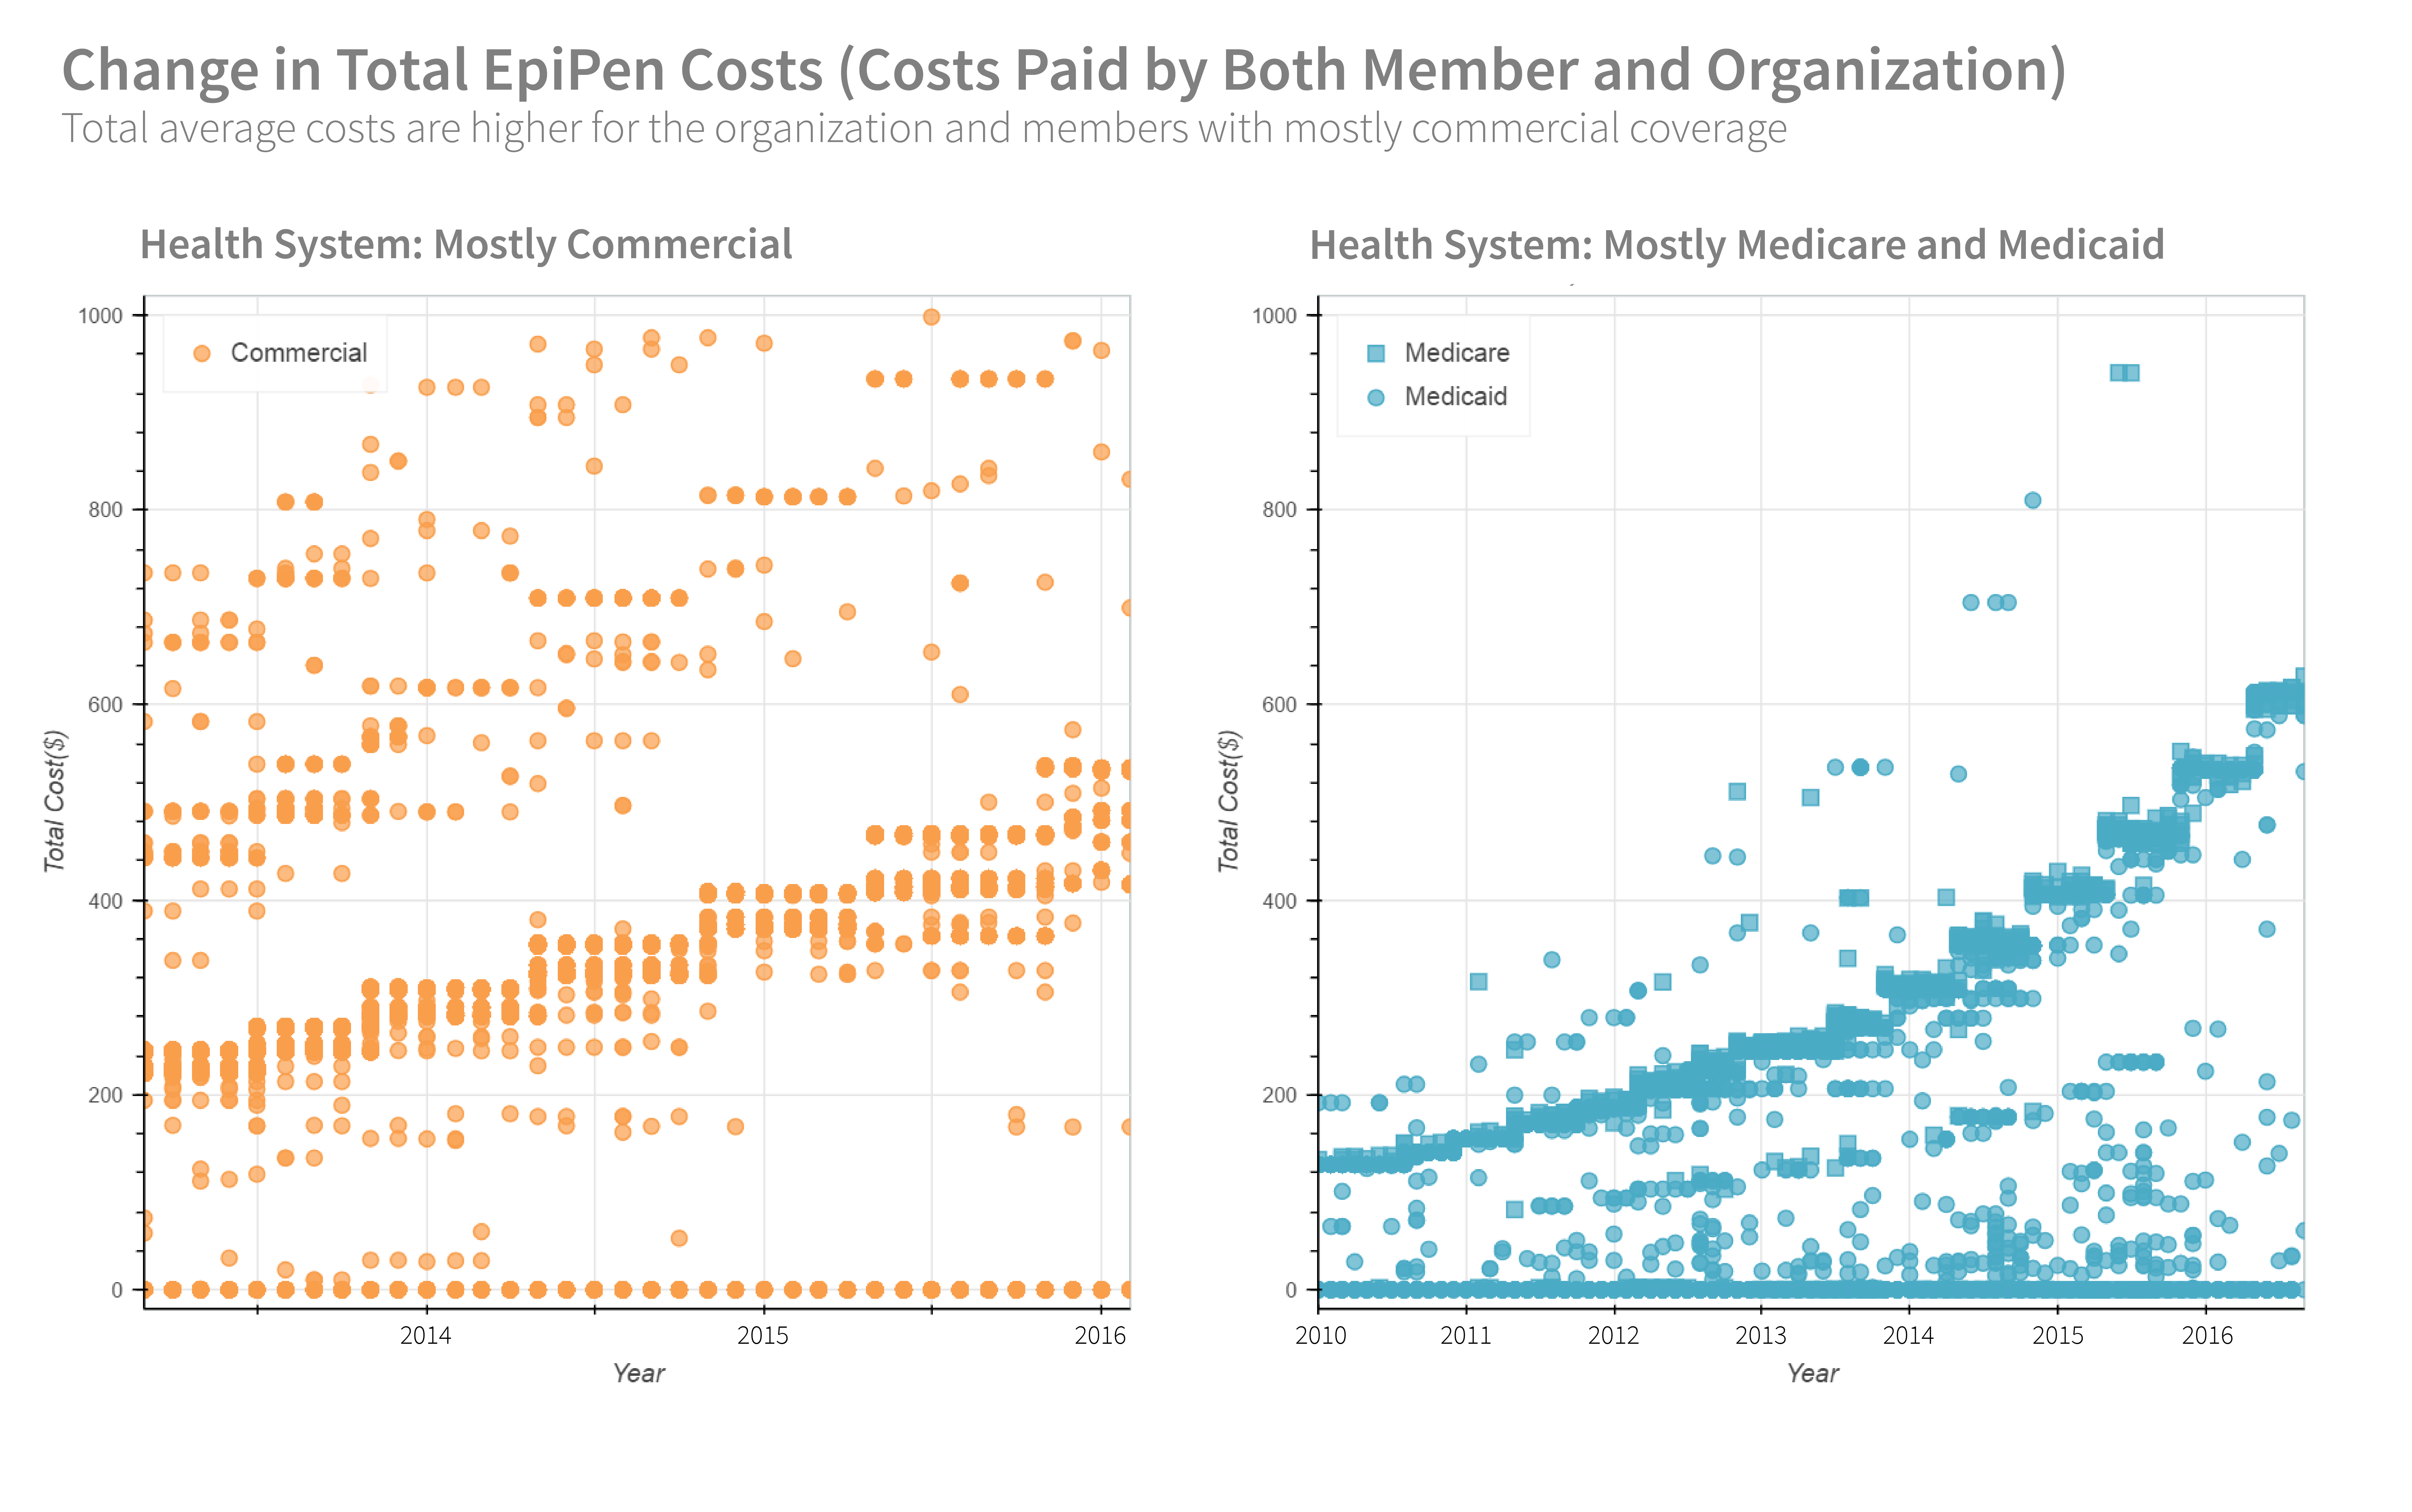 Change in Total EpiPen Costs